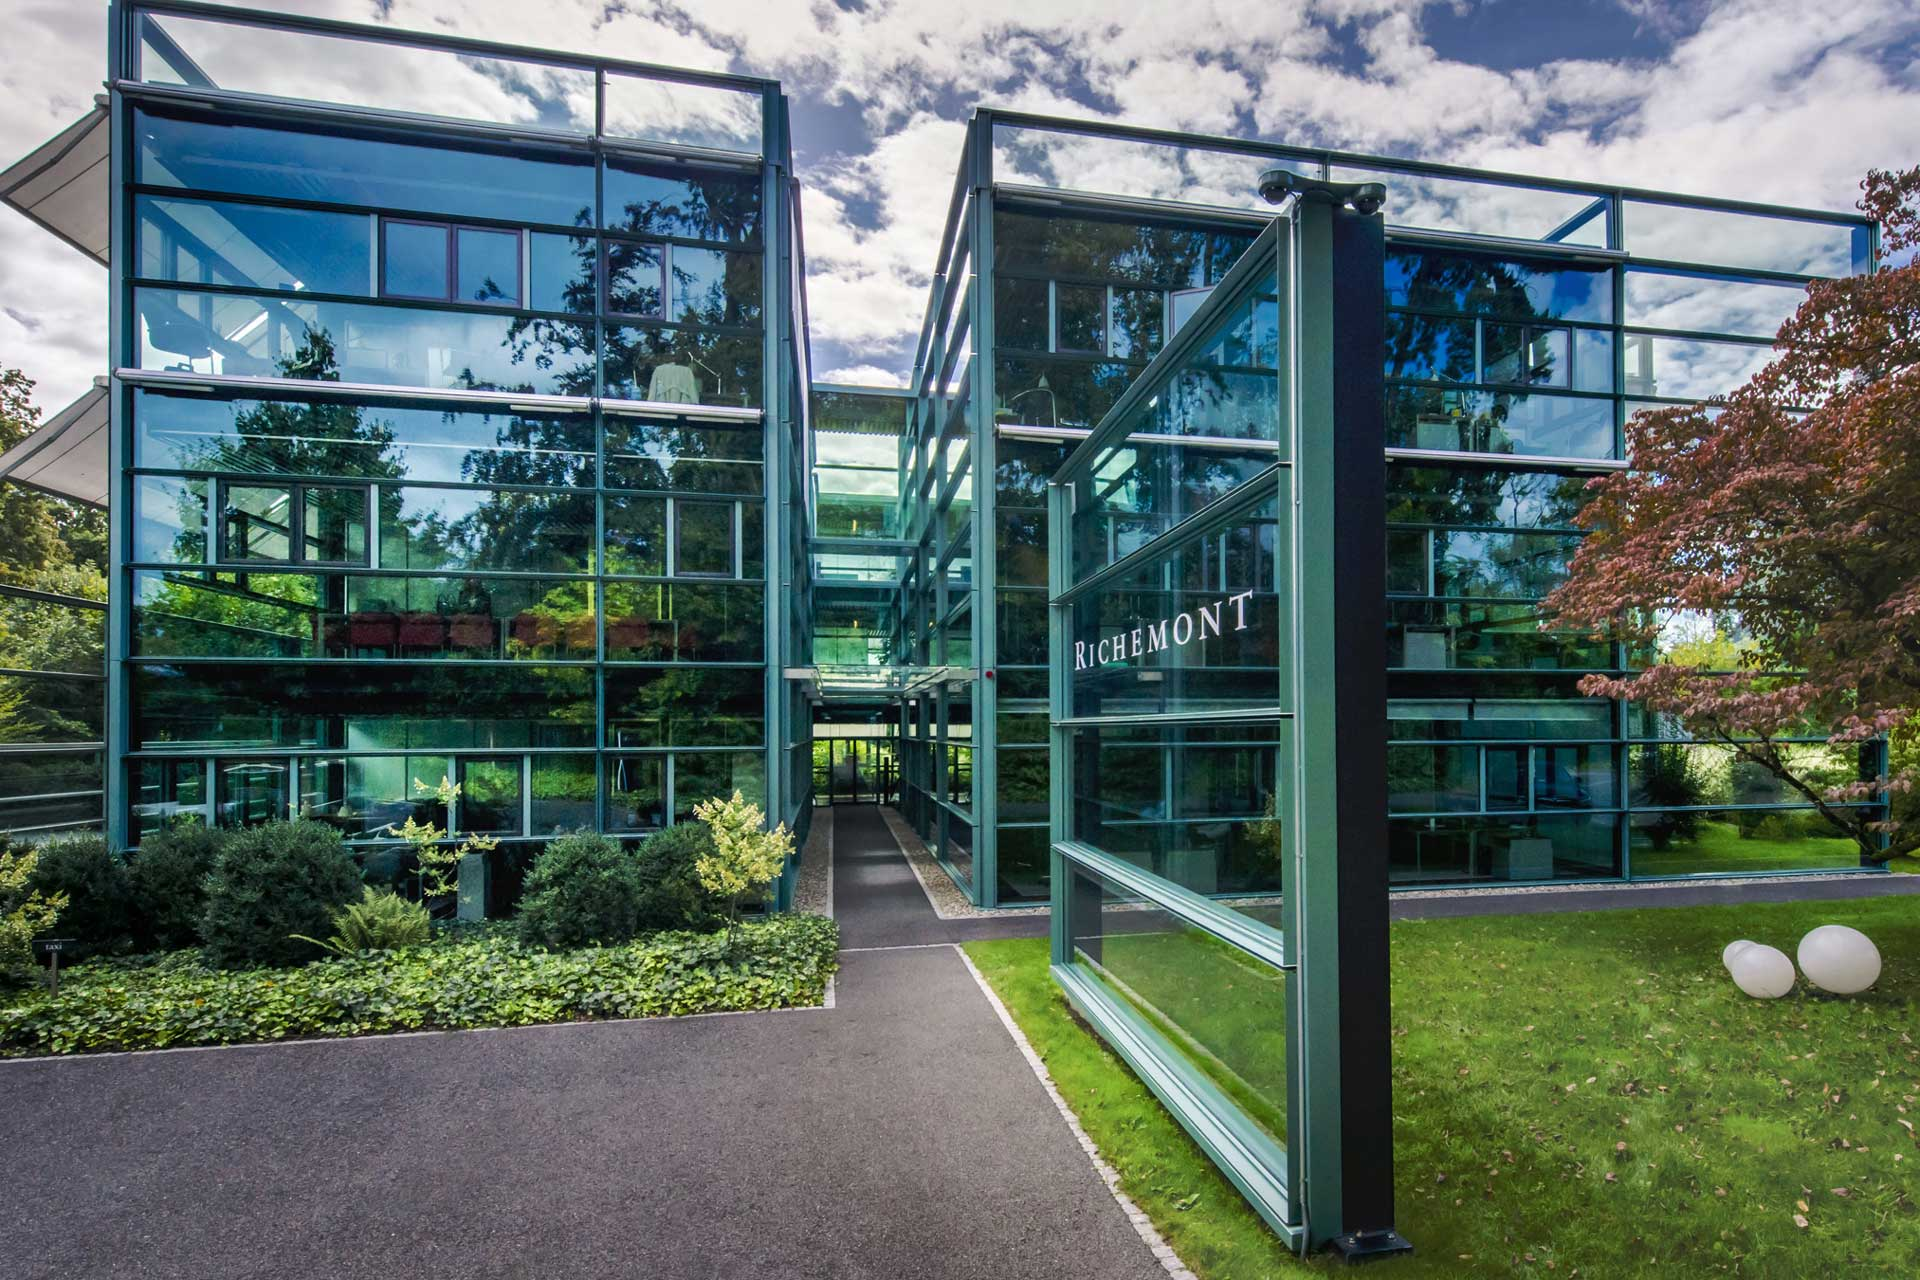 Industry News – Richemont Group First Quarter 2019 Results Show Solid Double-Digit Growth